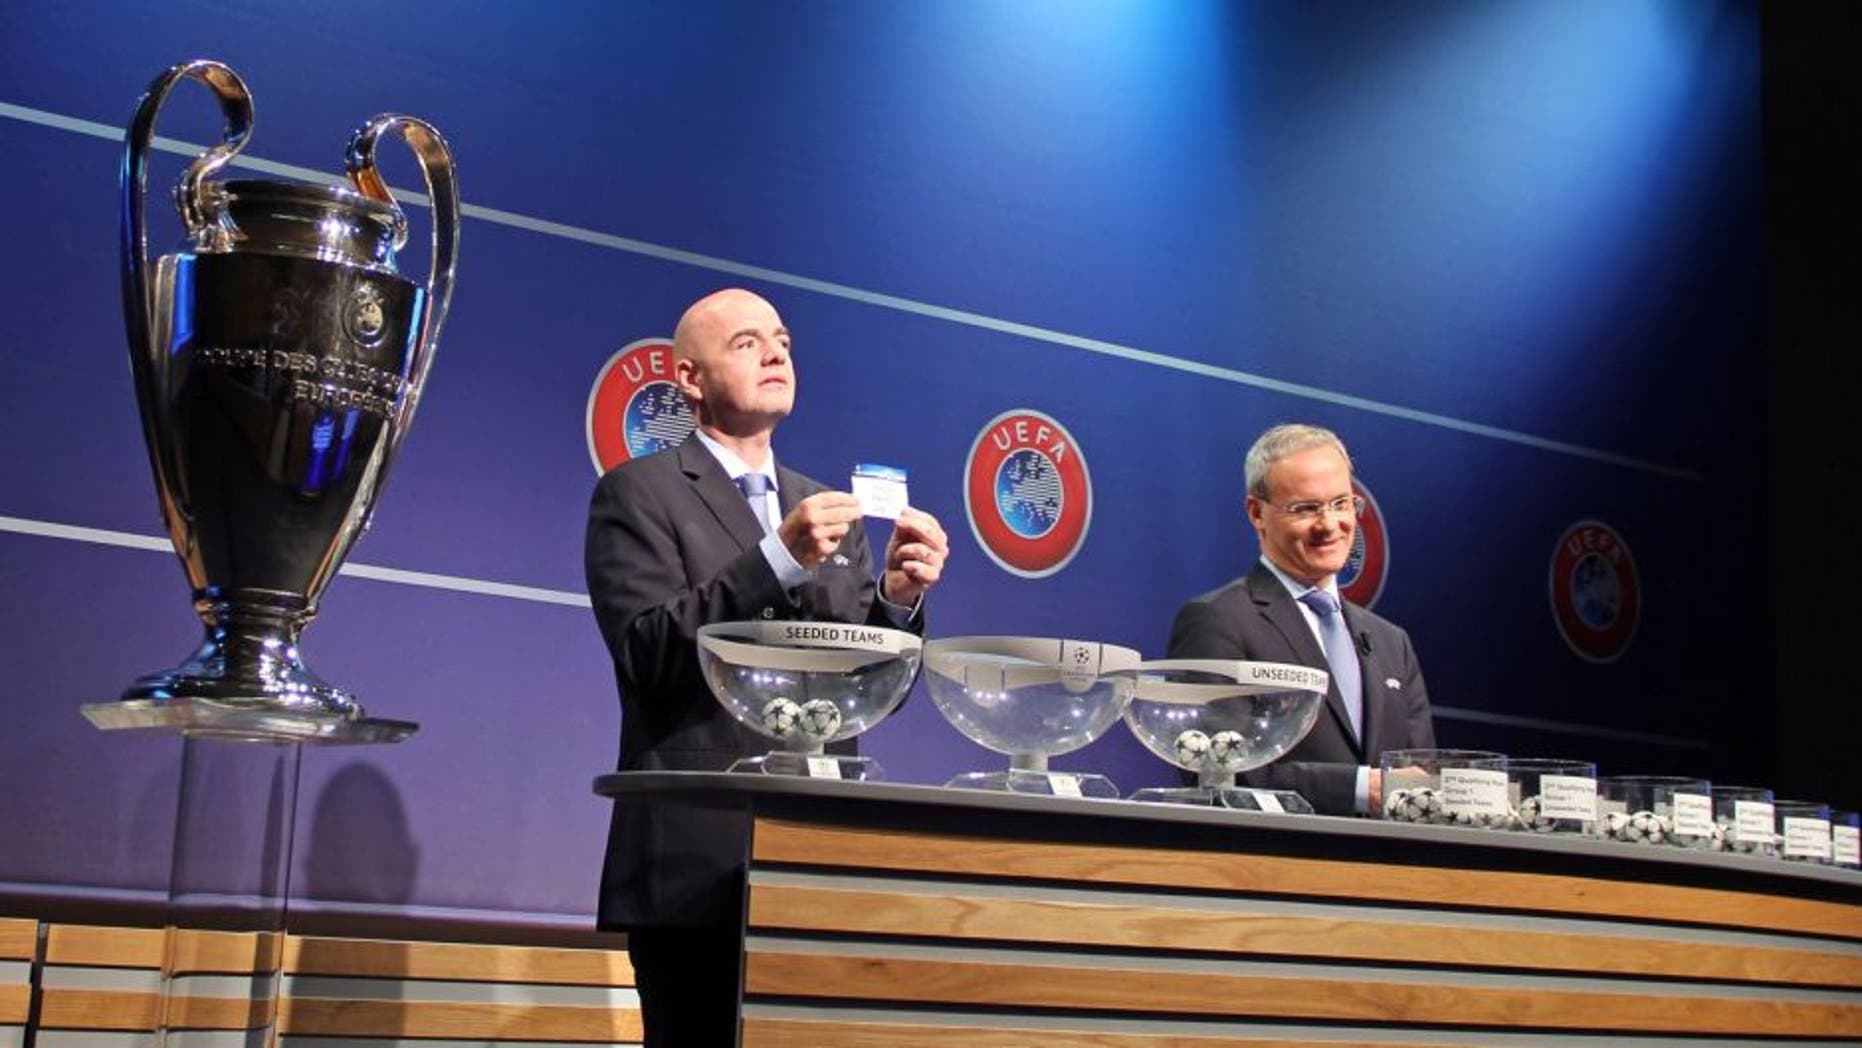 NYON, SWITZERLAND - JUNE 22: UEFA General Secretary Gianni Infantino (L) shows the lot of Lincoln Red Imps FC next to UEFA director of competitions Giorgio Marchetti (R) during the draw of the first two qualifying rounds of the UEFA Champions League 2015/16 at the UEFA Headquarters in Nyon, Switzerland on June 22, 2015. (Photo by Fatih Erel/Anadolu Agency/Getty Images)